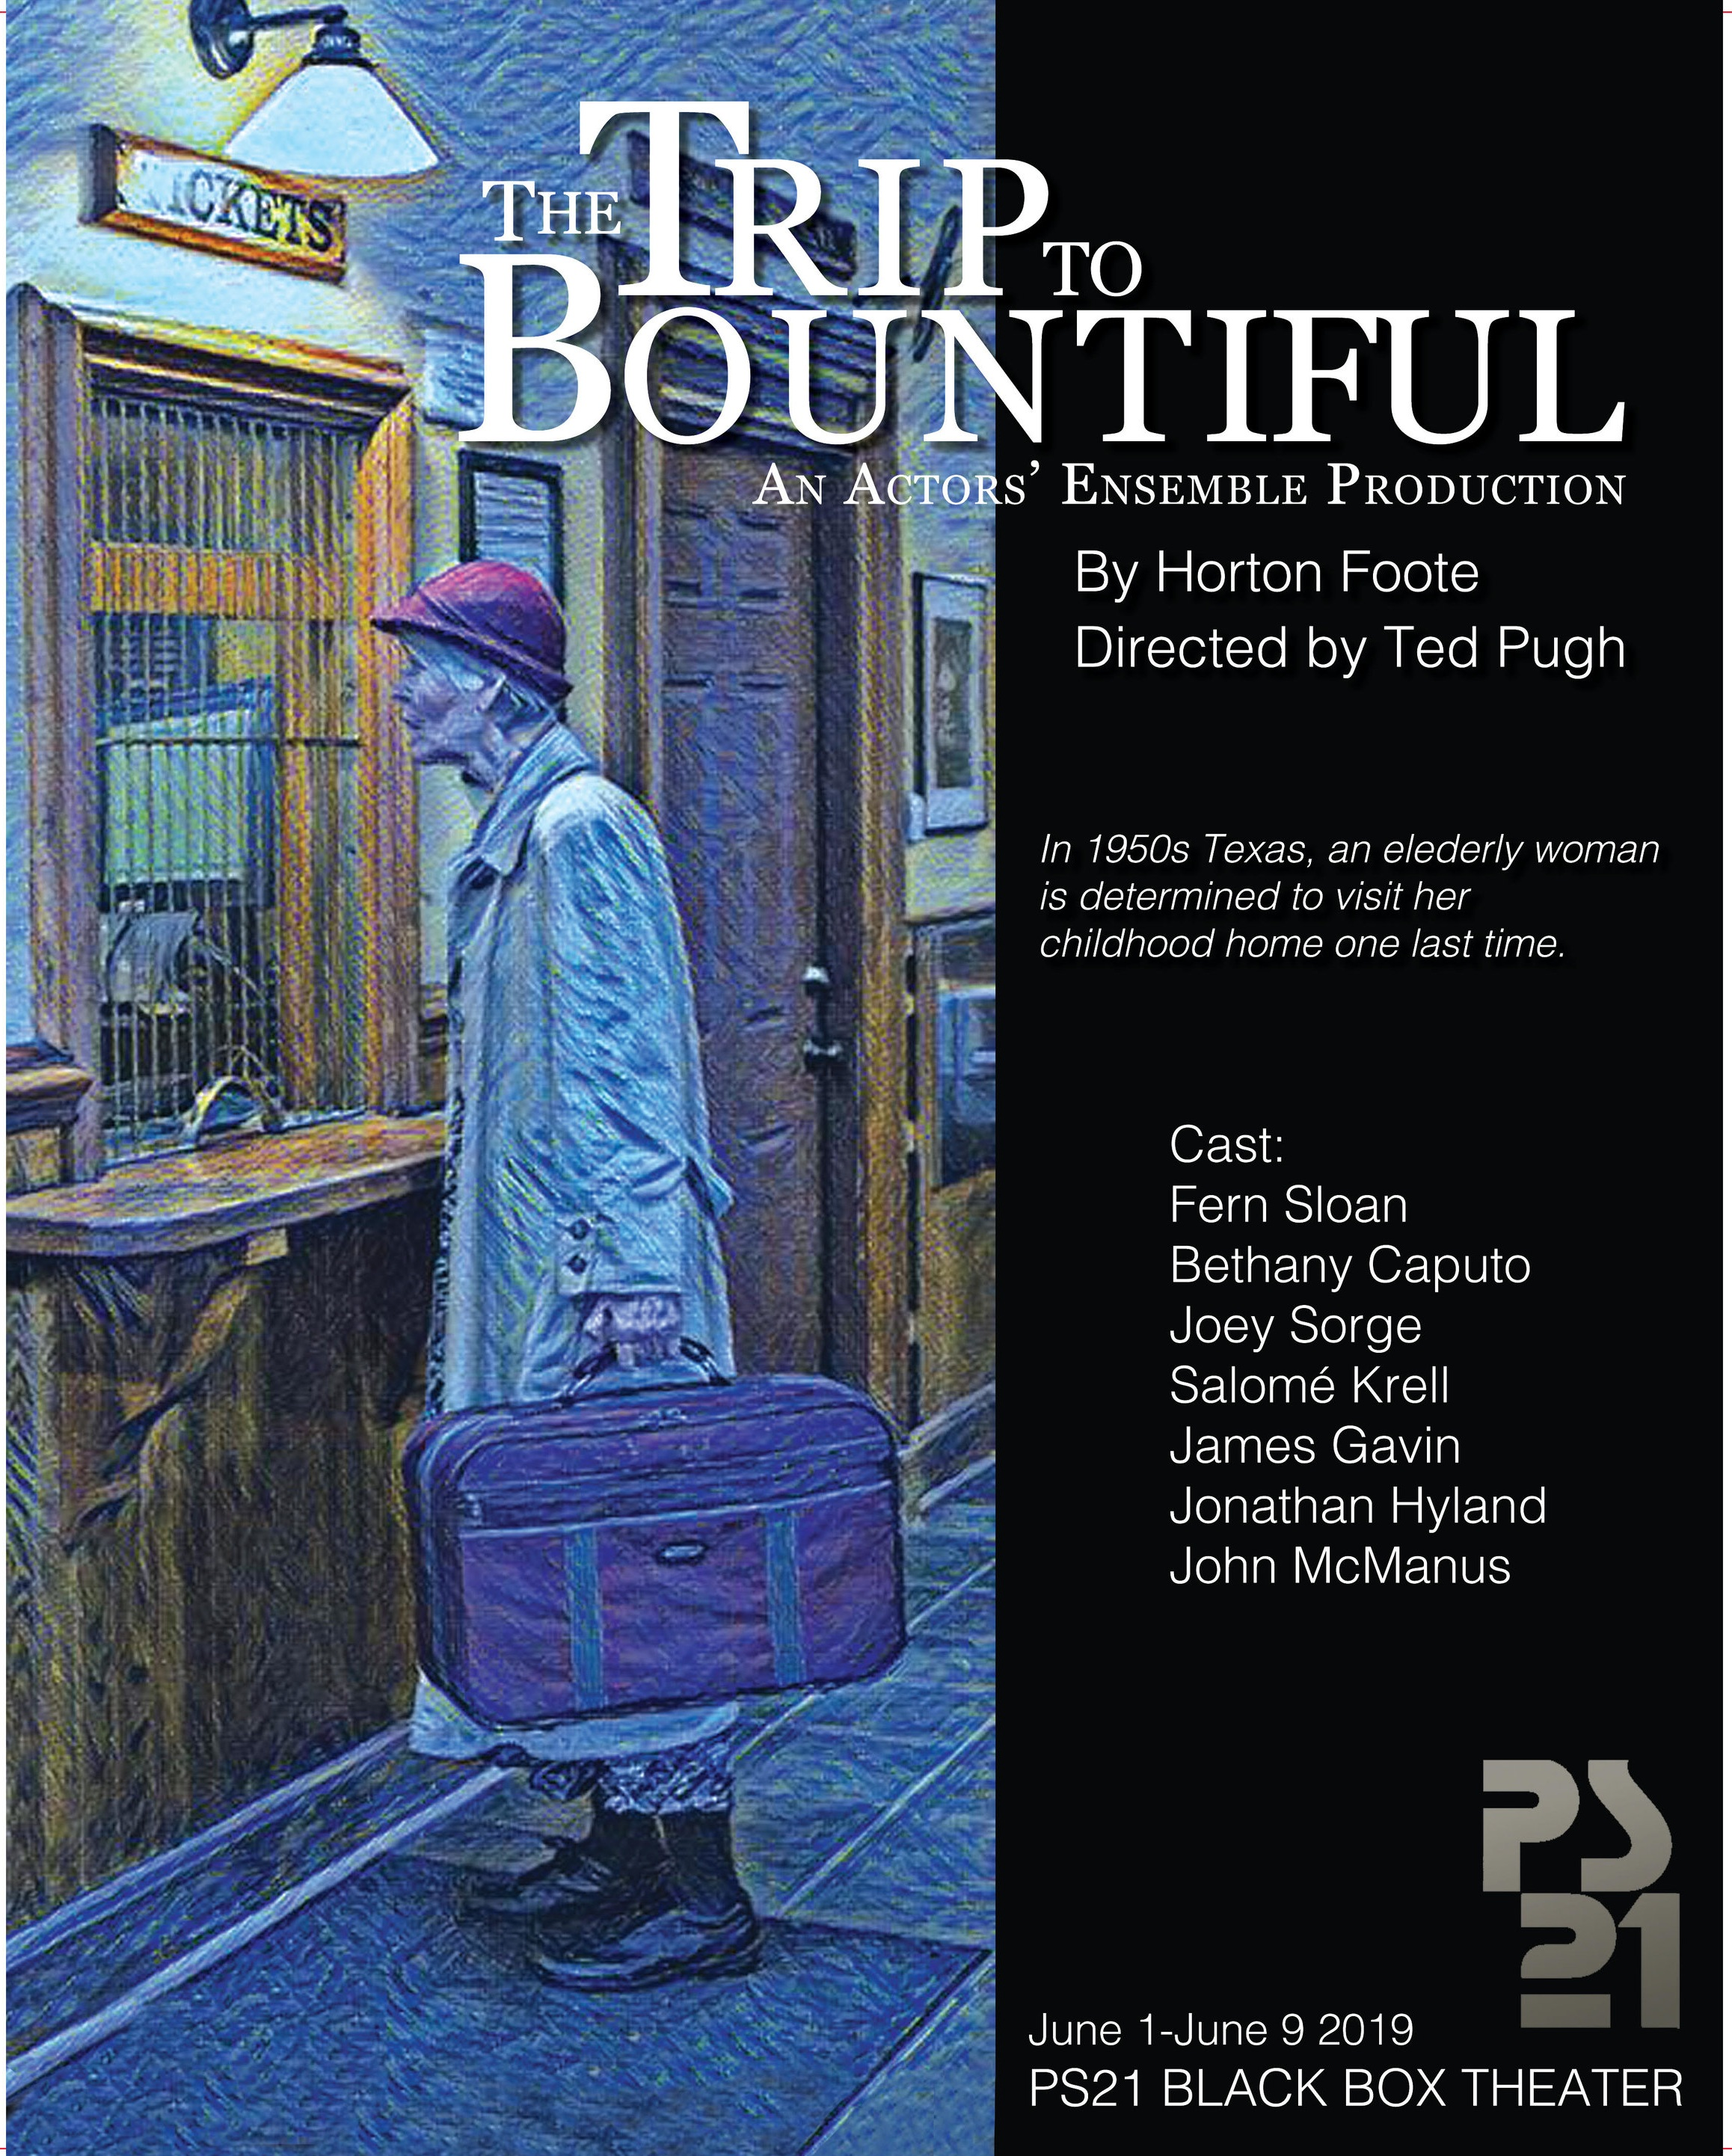 The Trip to Bountiful - With Fern Sloan, Bethany Caputo, Joey Sorge, Salome Krell, James Gavin, John McManus, Jonathan Hyland, Eddie Allen, and directed by Ted Pugh with Connie Rotunda as Assistant Director.  Performed at PS21